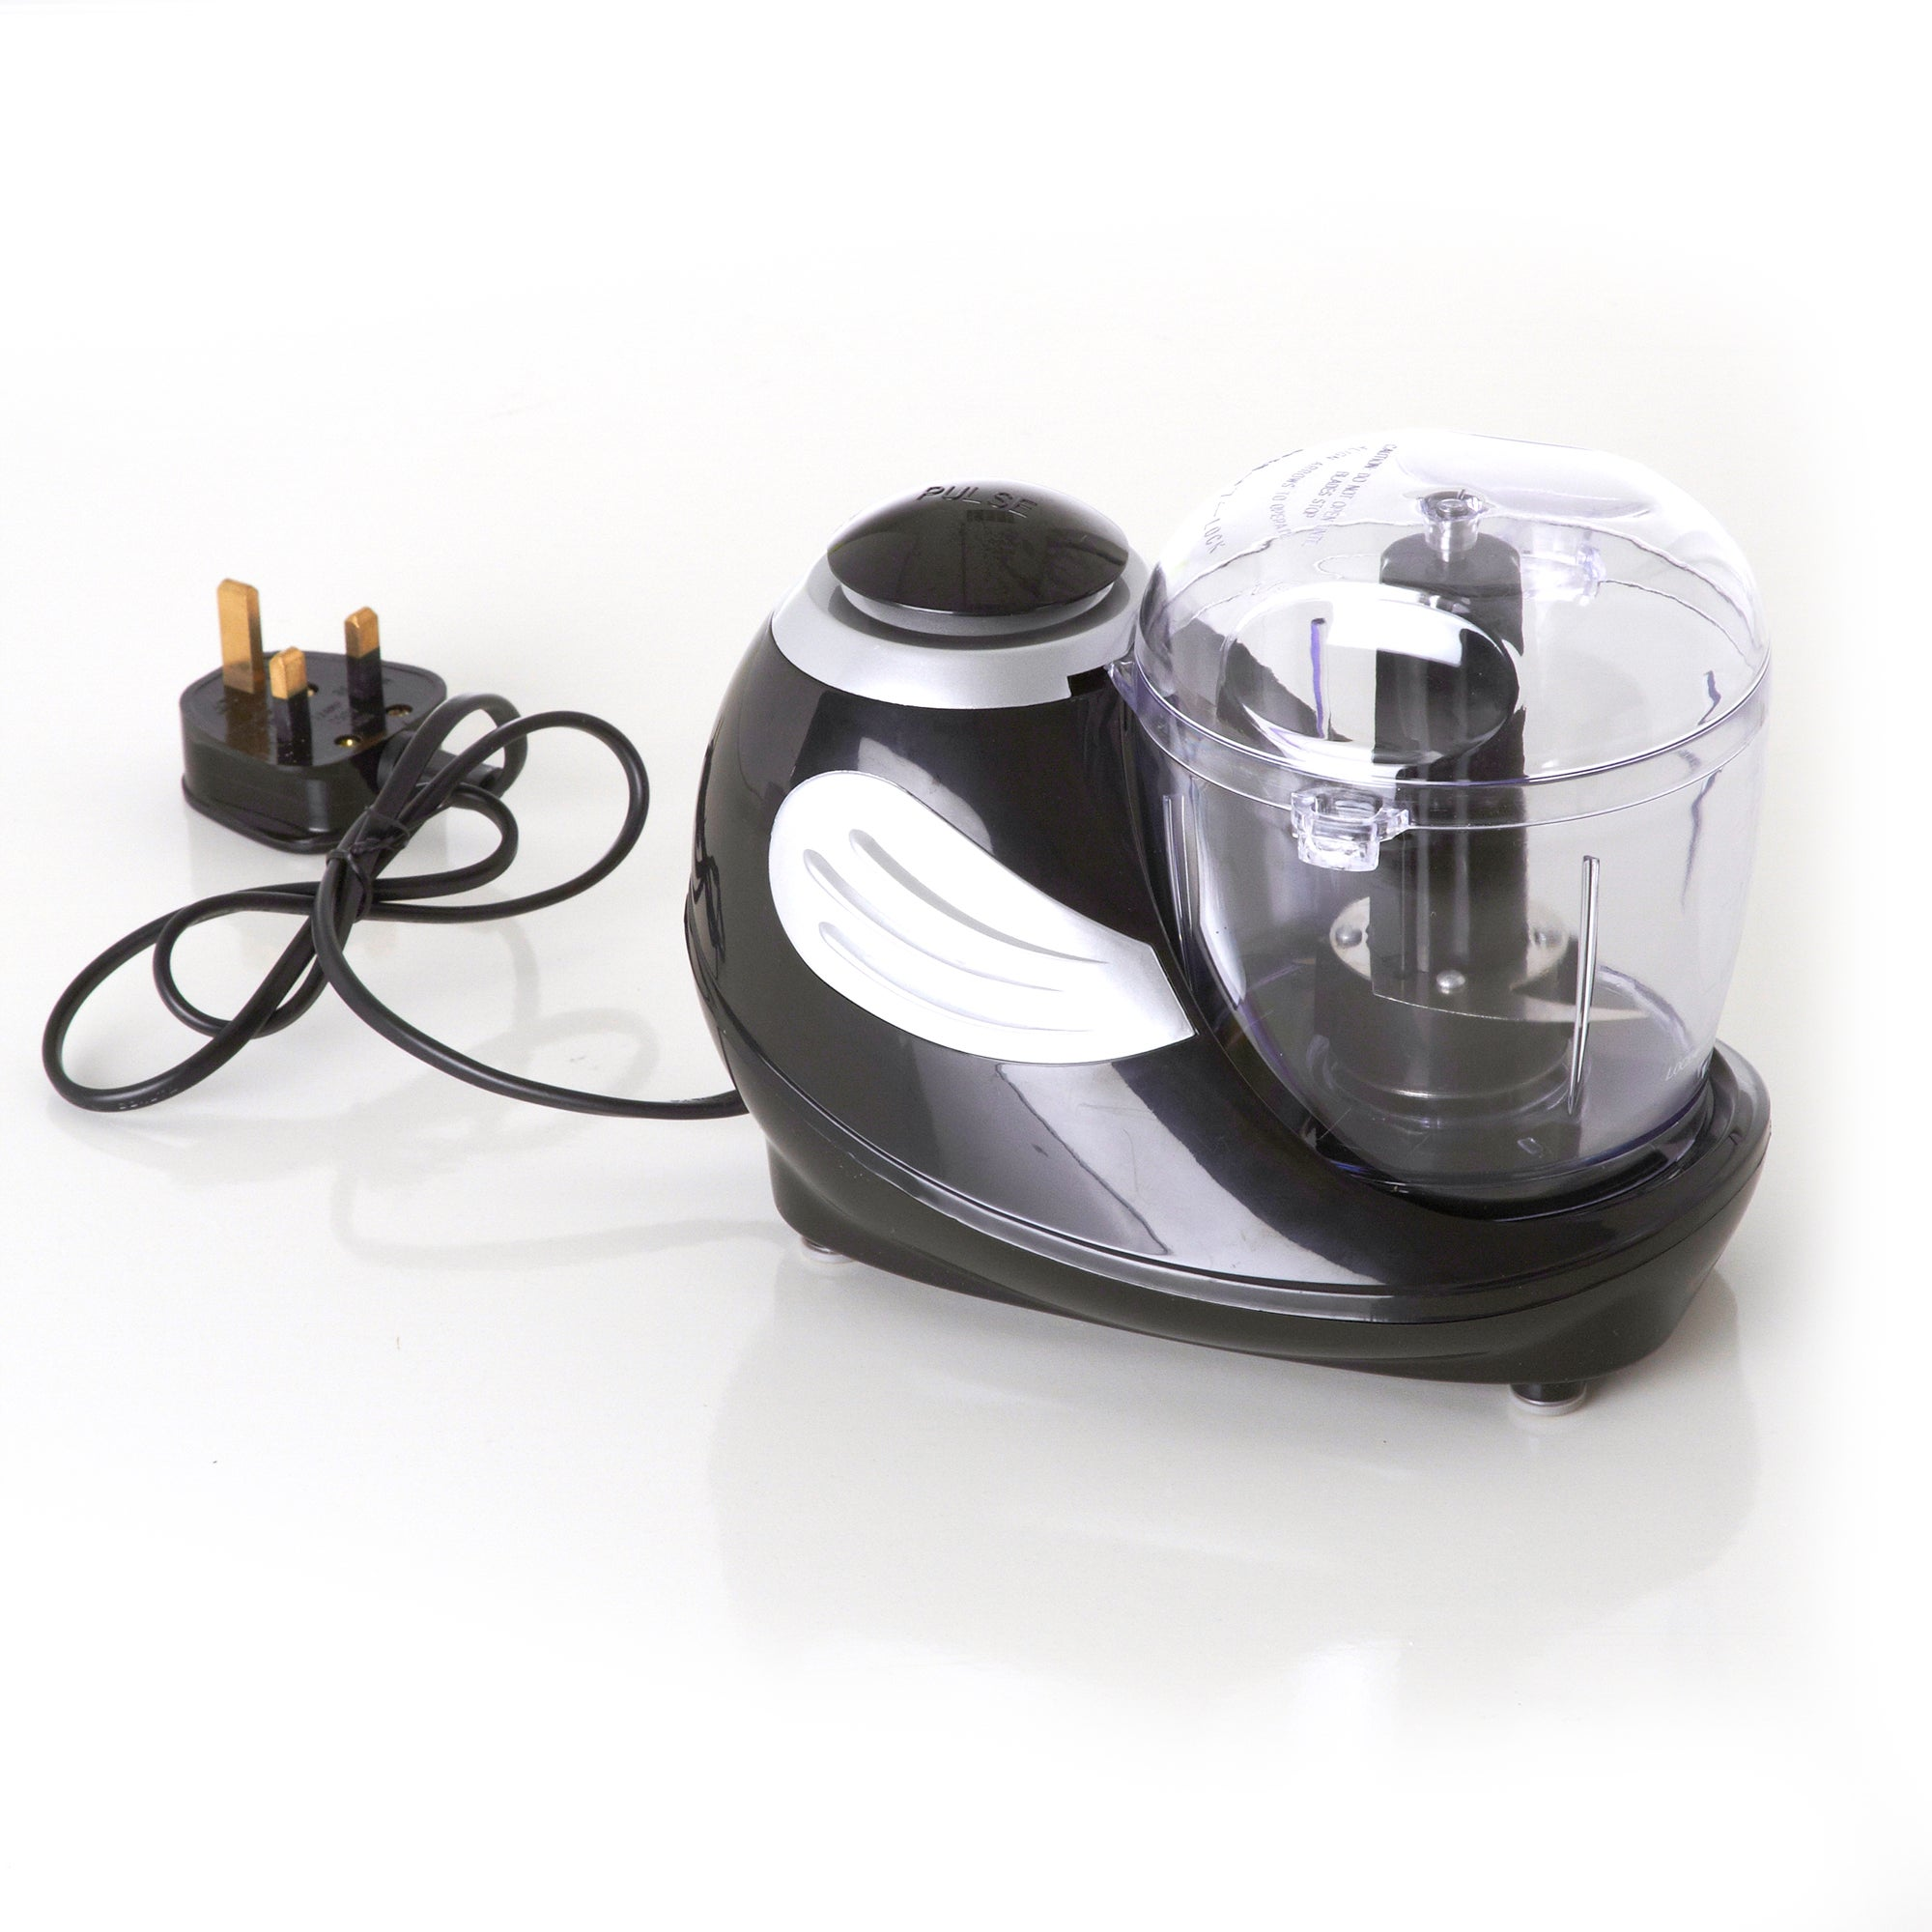 Simply Black Mini Food Processor